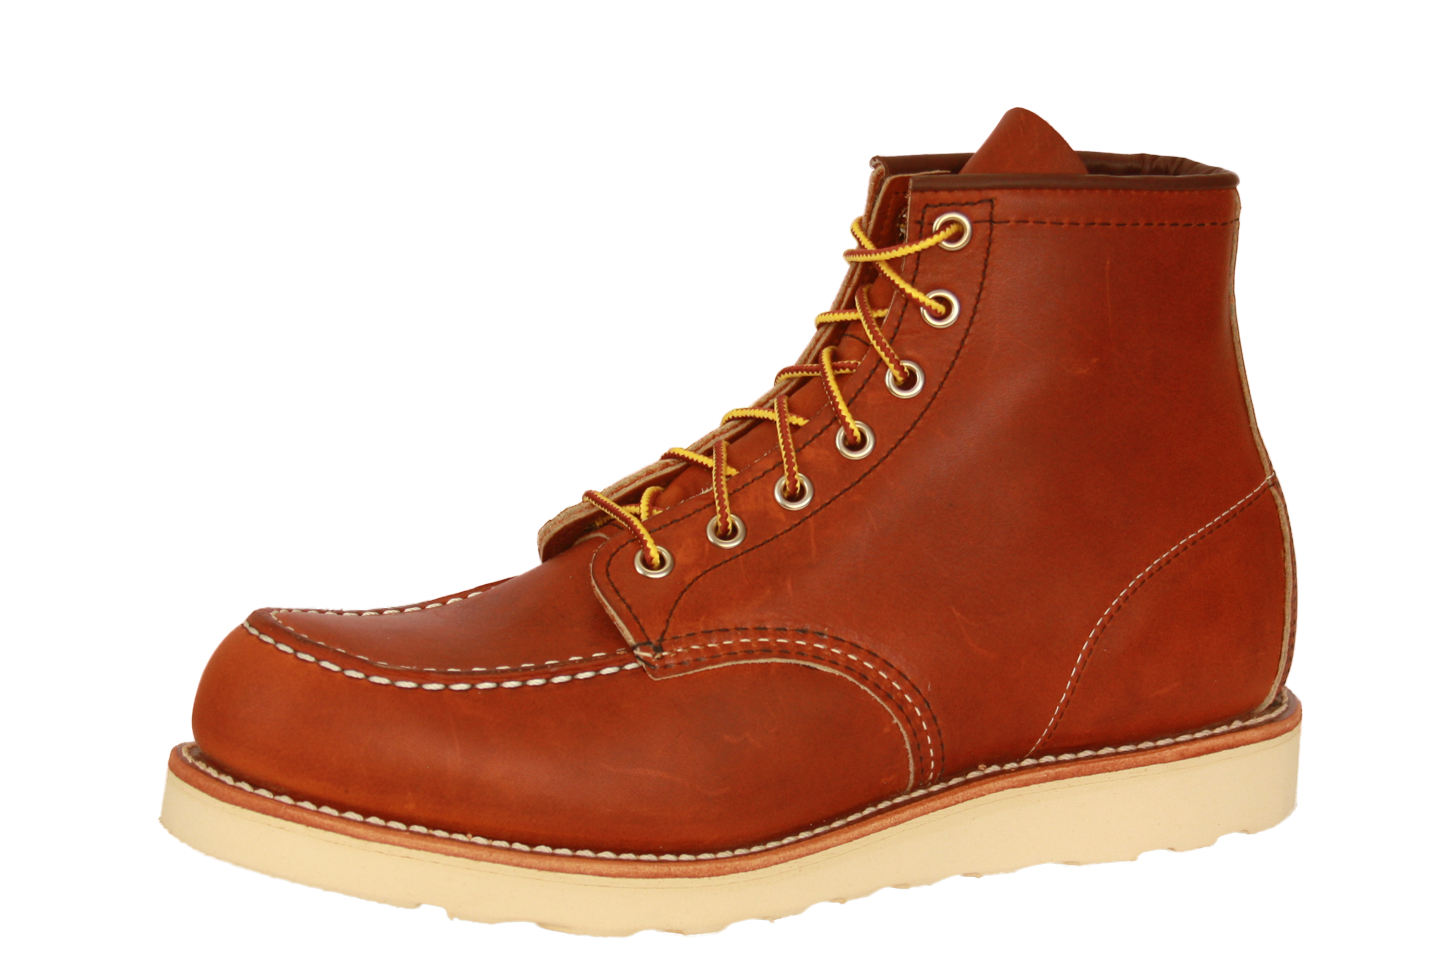 Red Wing Boots On Sale fSOOpmvu